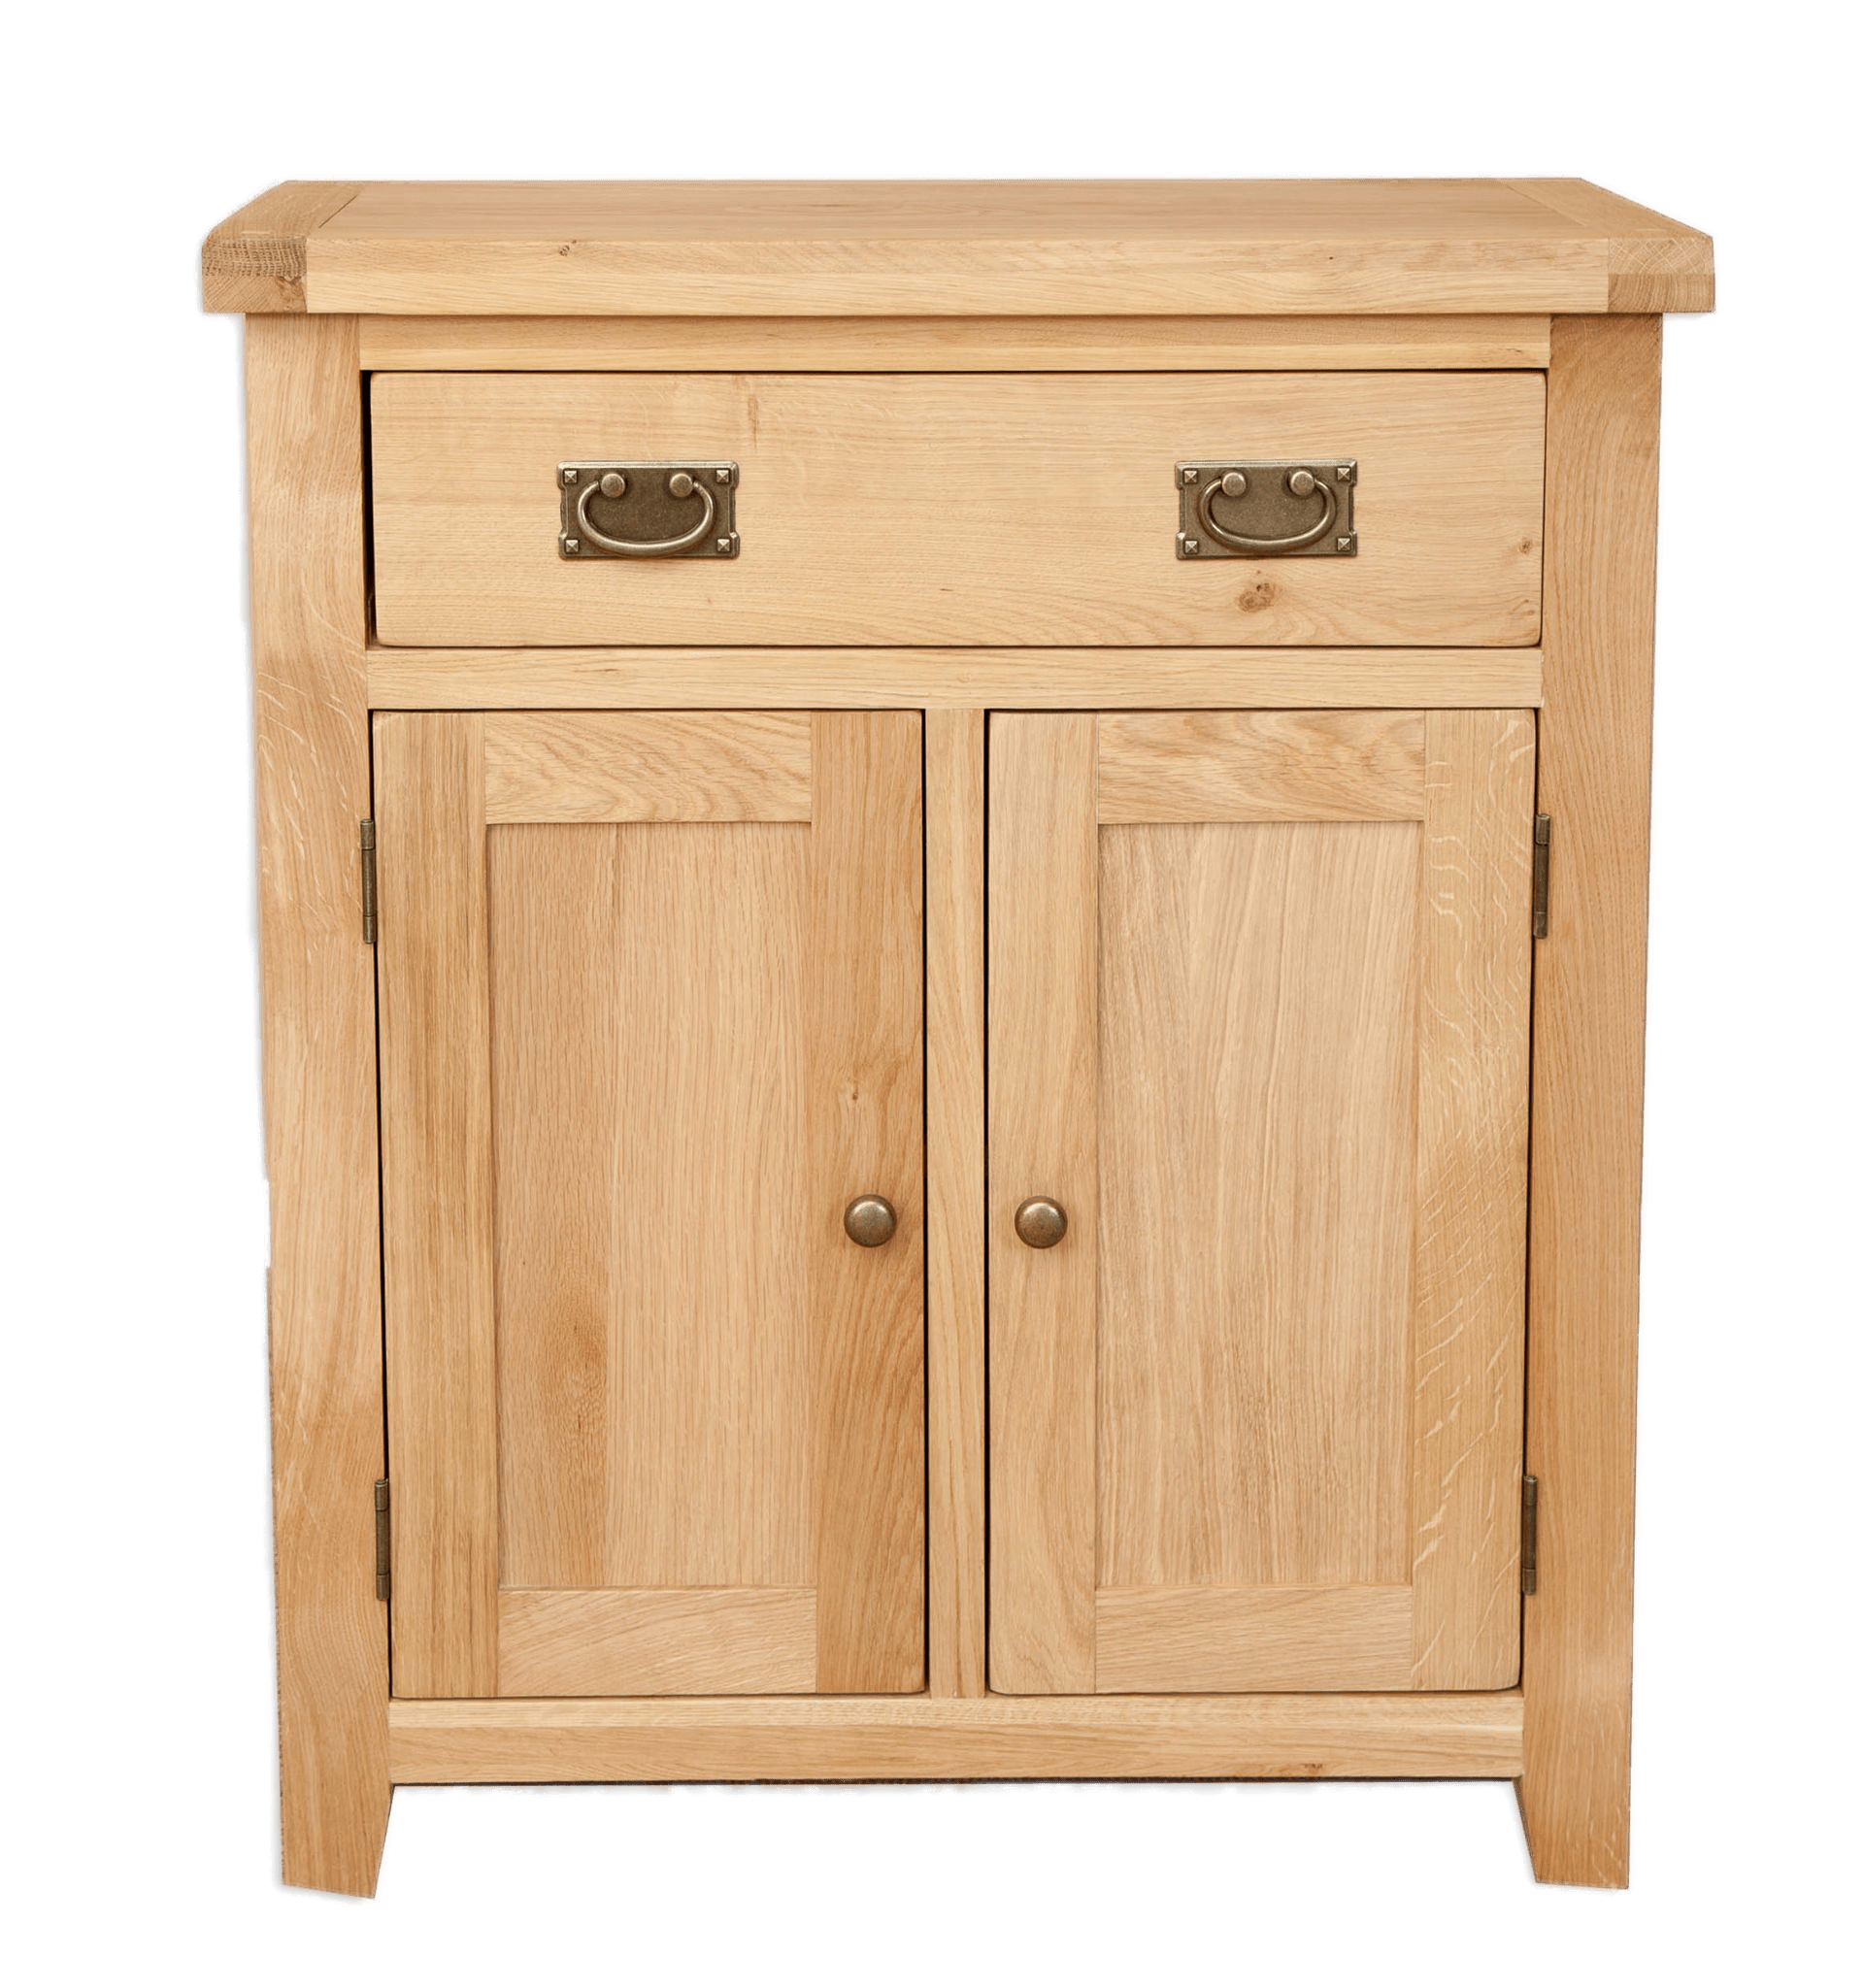 classic small uk wood awesome with designs on wardrobe cupboard storage lockable doors nice wooden knobs cabinets